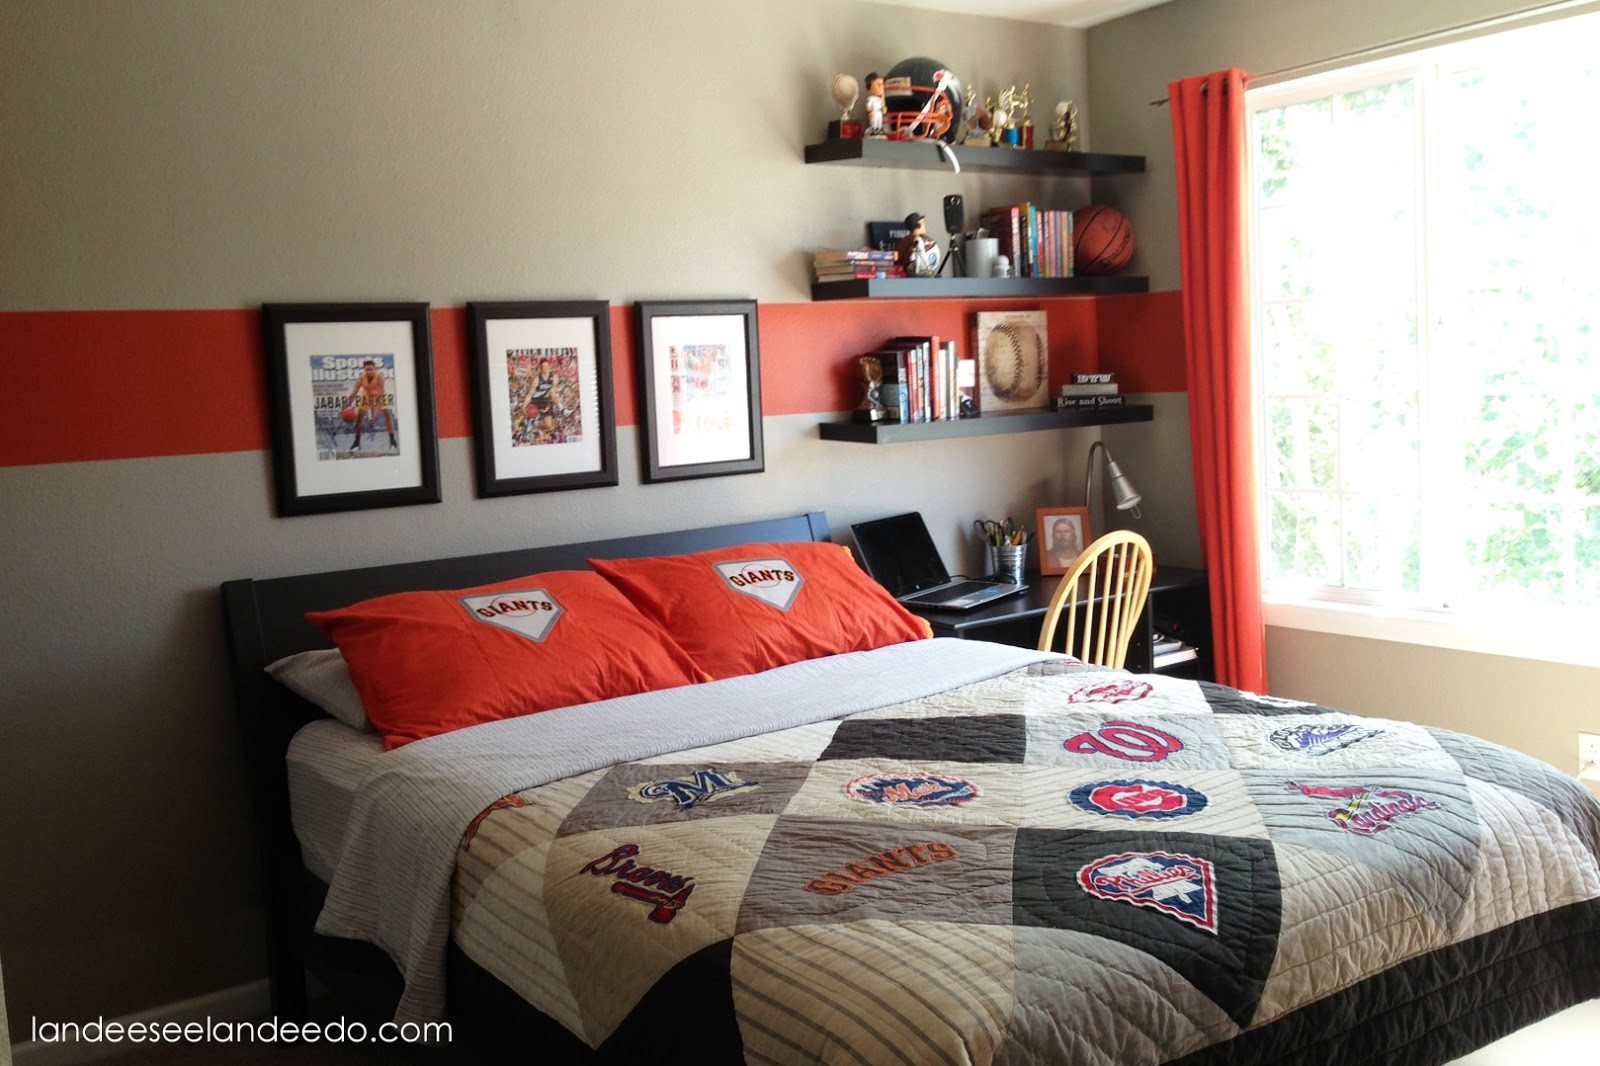 Sports theme bedroom for boys design pictures remodel decor and ideas page 7 sports - Teen boys bedroom decorating ideas ...